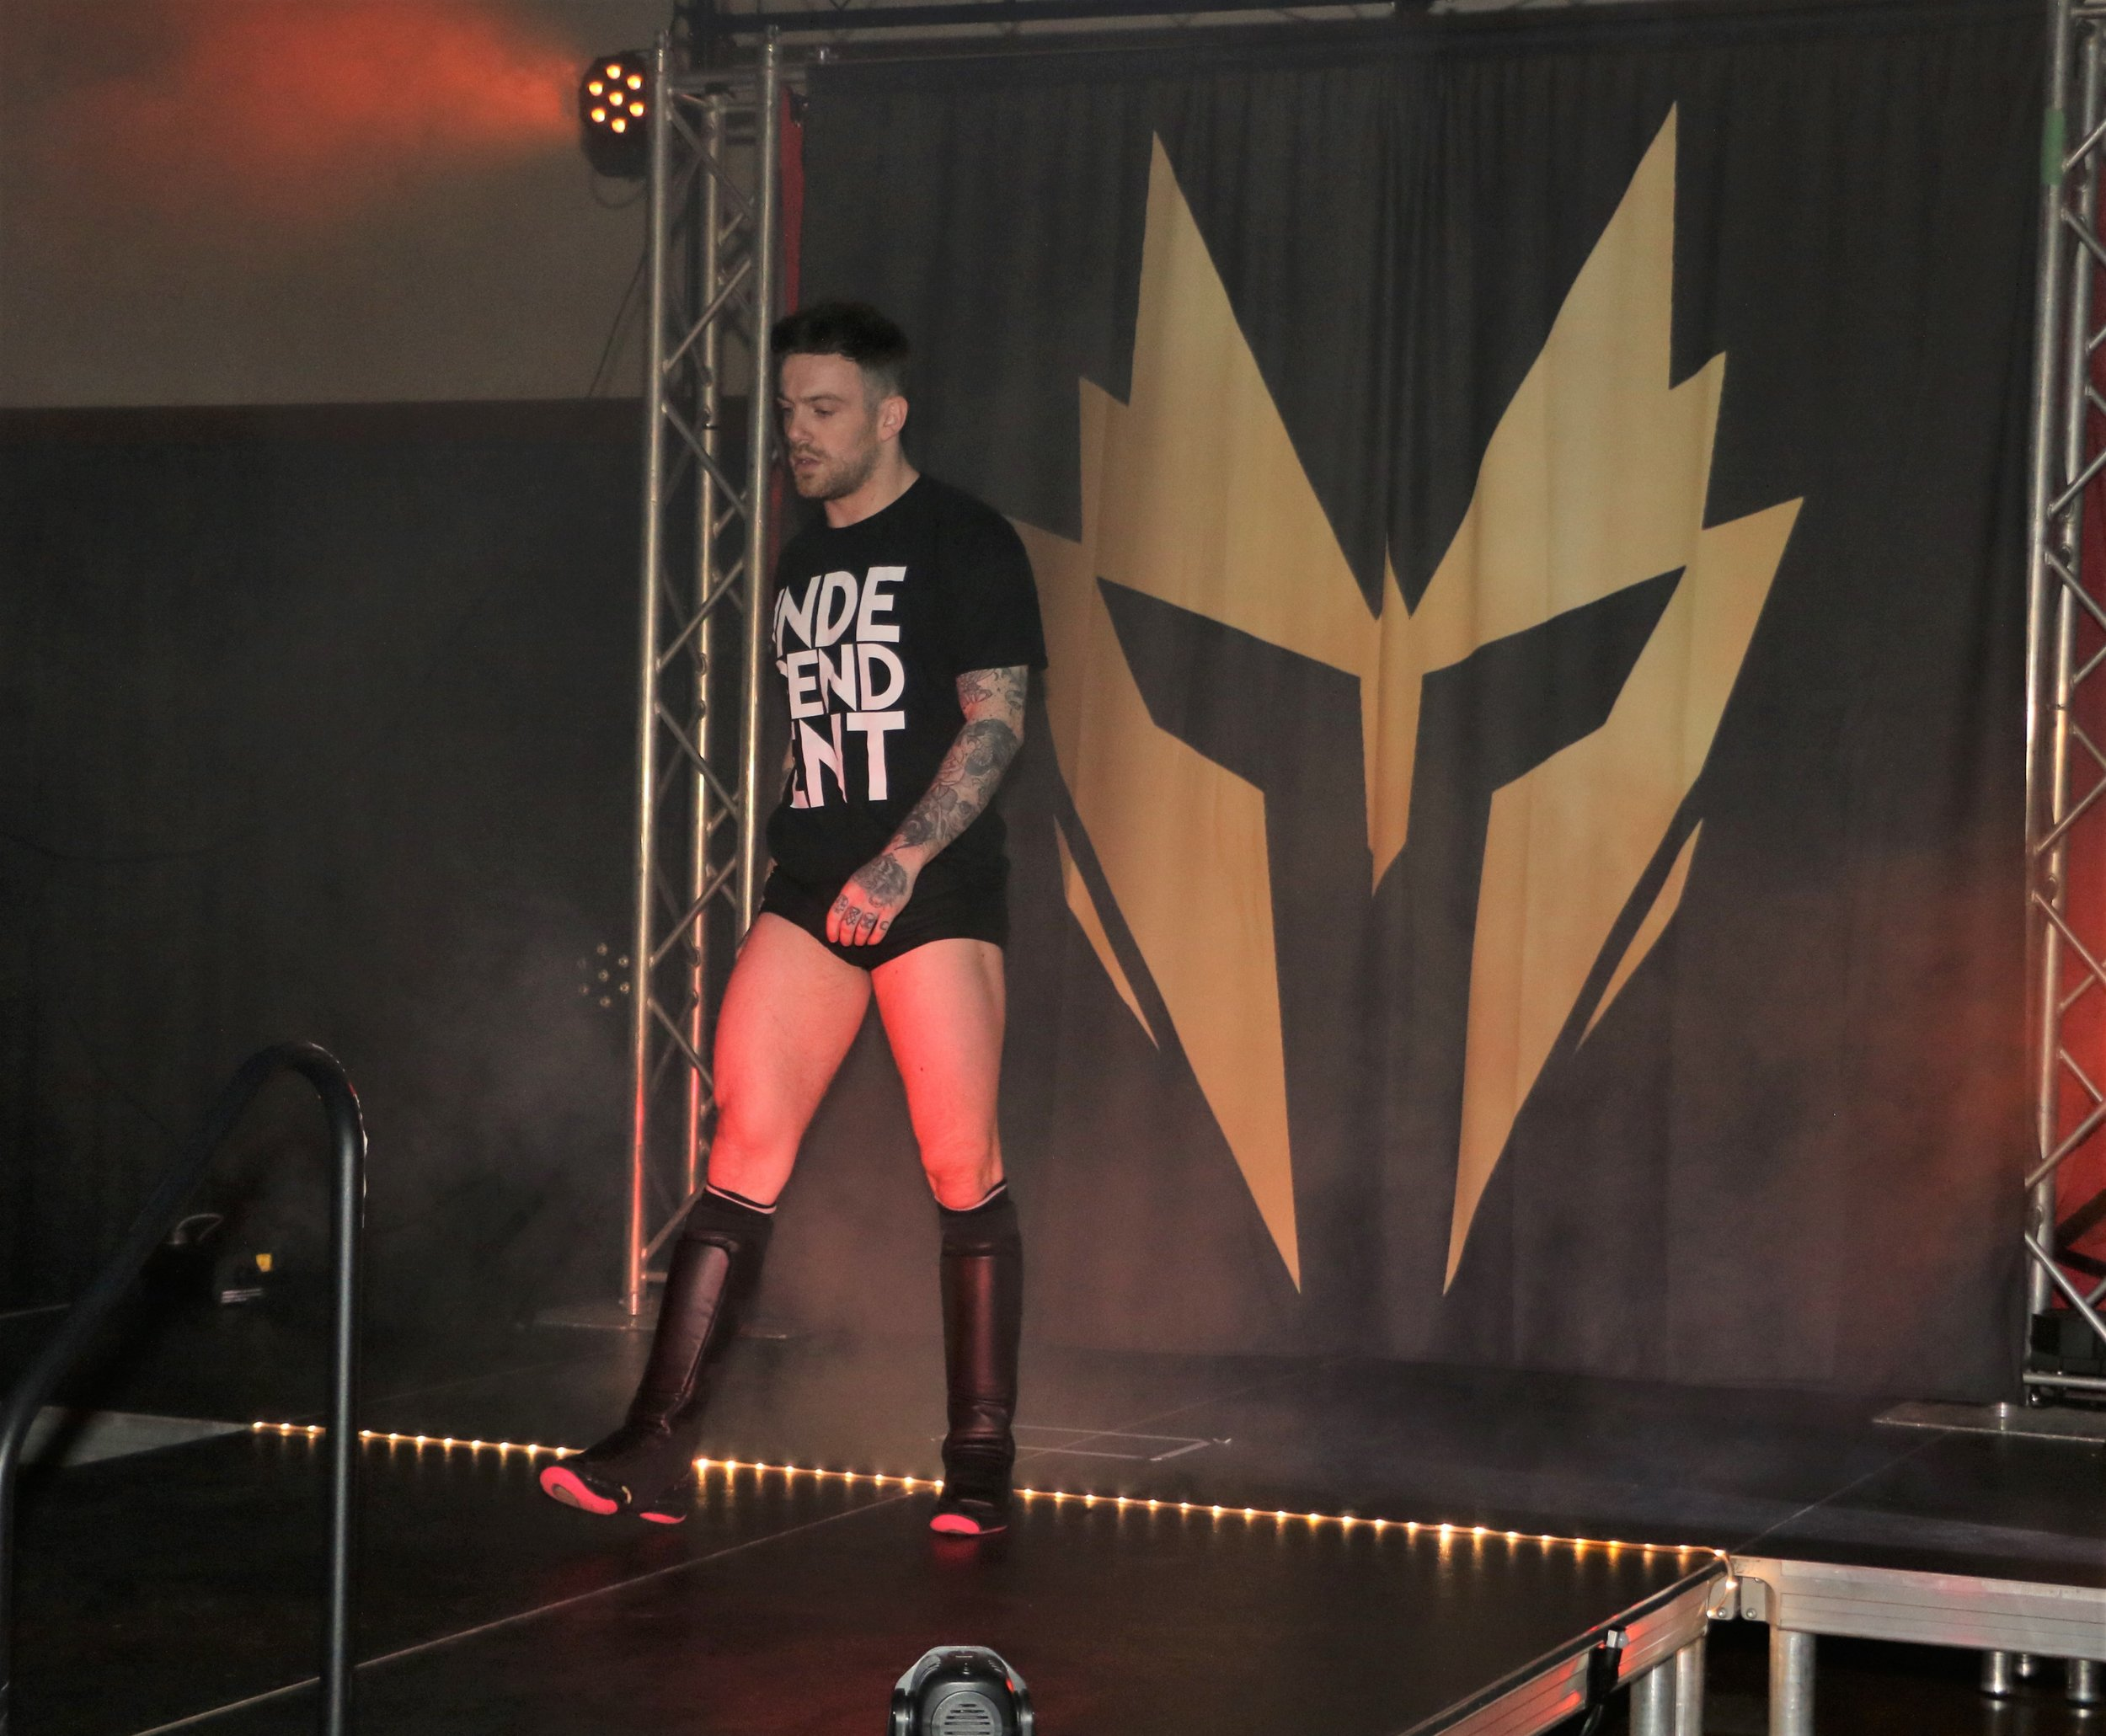 Chris Ridgeway enters the arena for his match against Tom Lawlor.